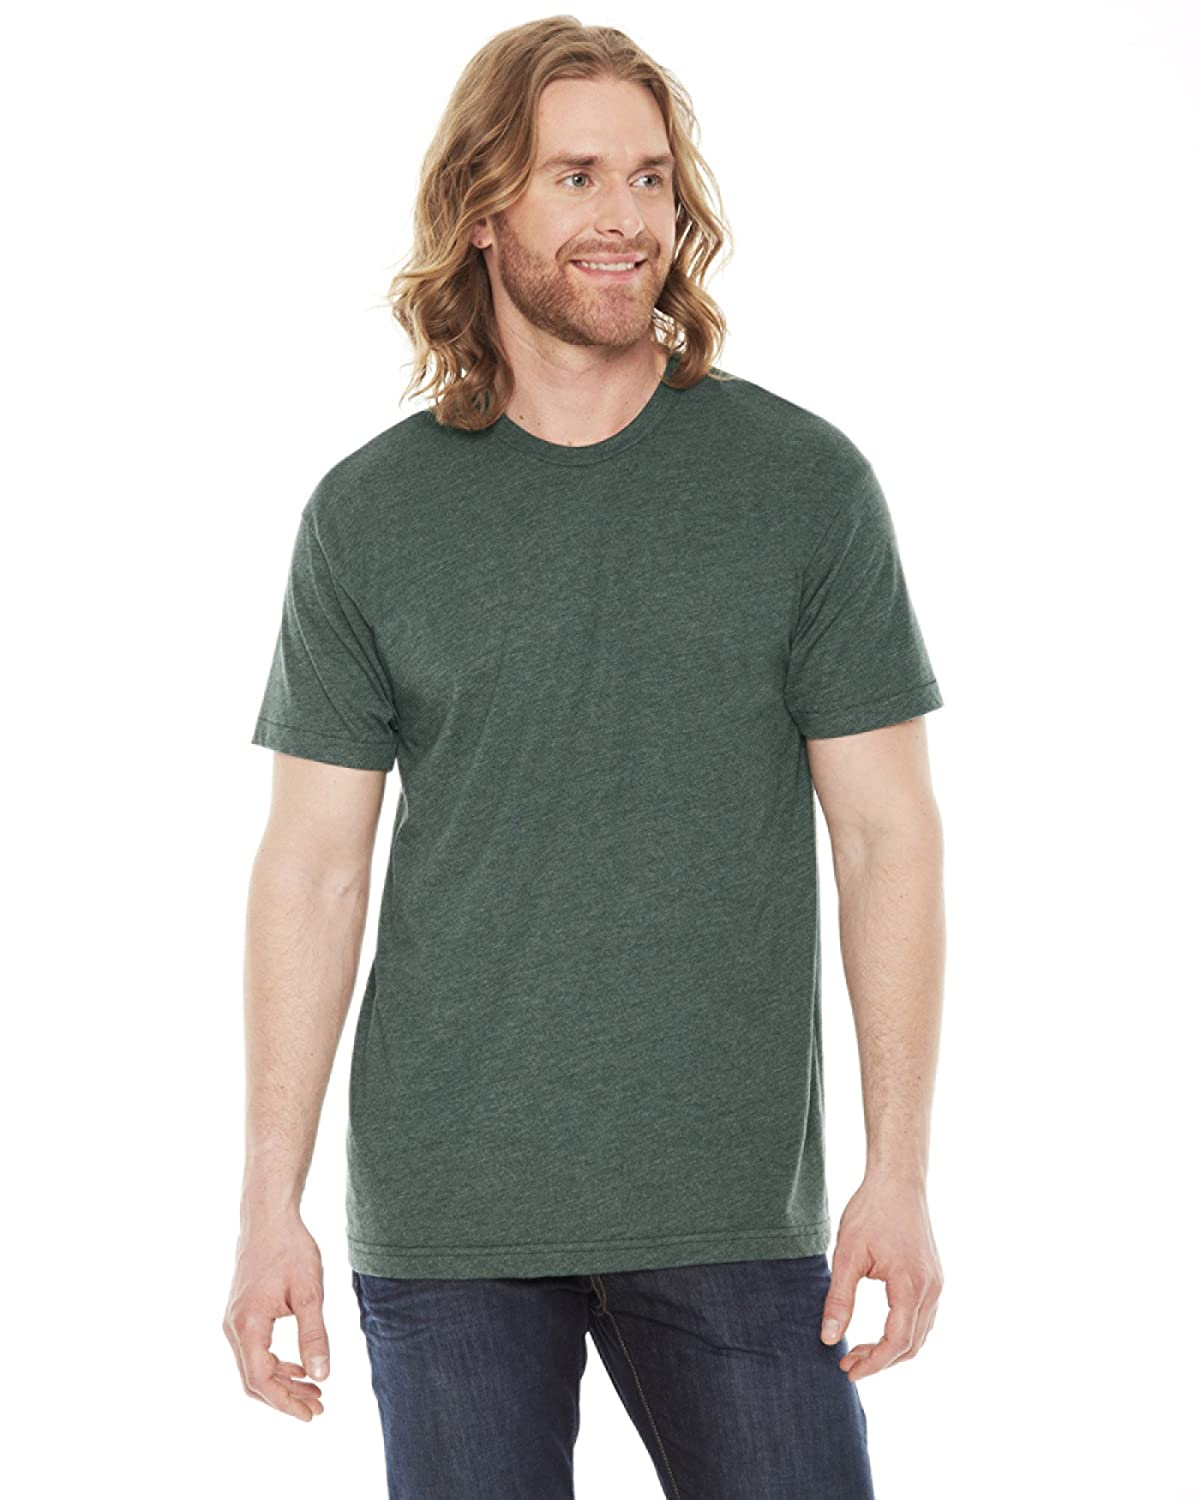 American Apparel Unisex Poly/cotton Short Sleeve Crew Neck - Heather Forest - XL